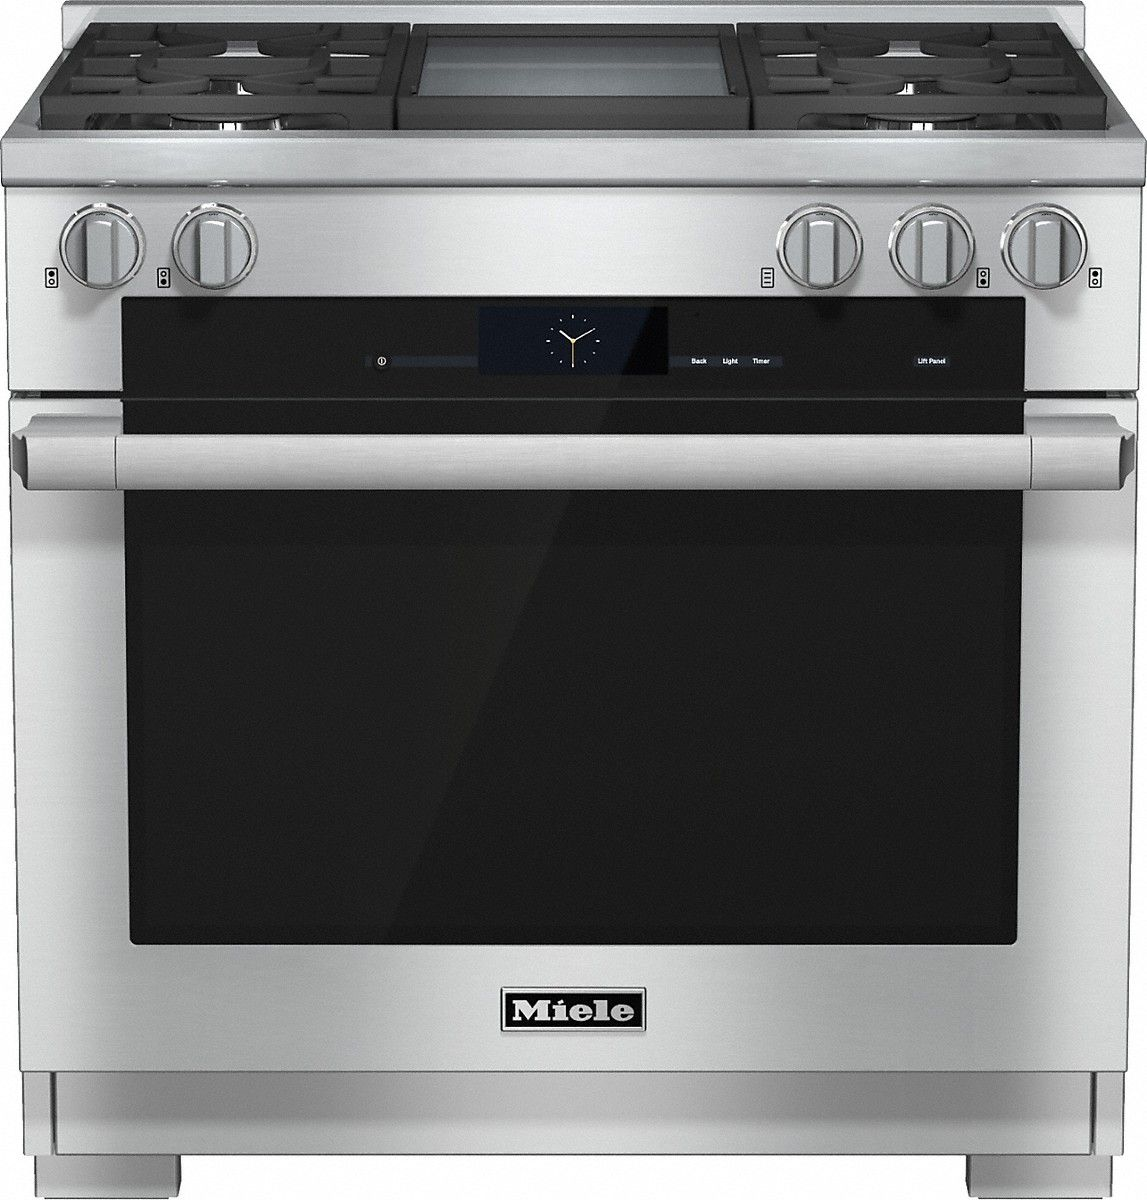 HR 1936 G 36 Inch Range Dual Fuel with M Touch controls